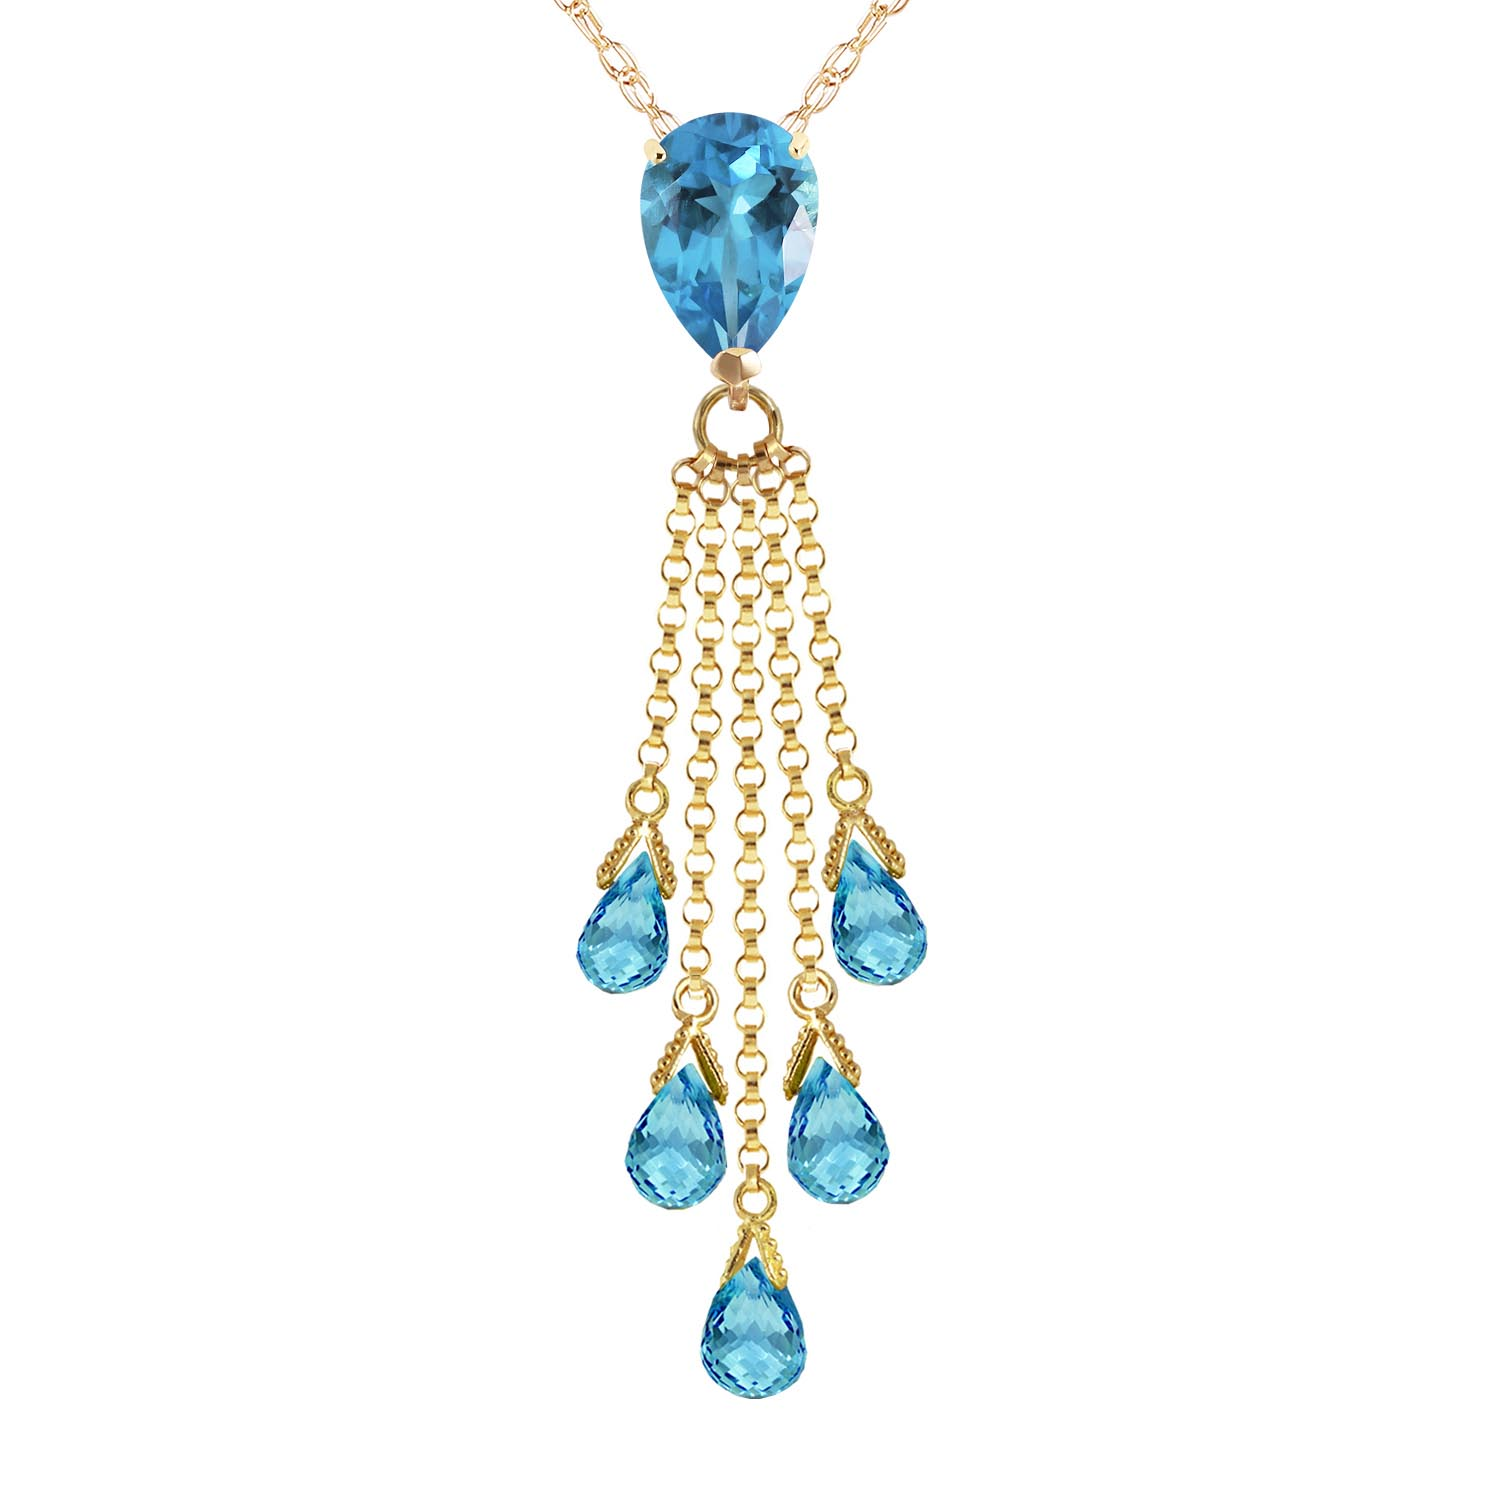 Bargain Blue Topaz Comet Tail Pendant Necklace 7.5ctw in 9ct Gold Stockists